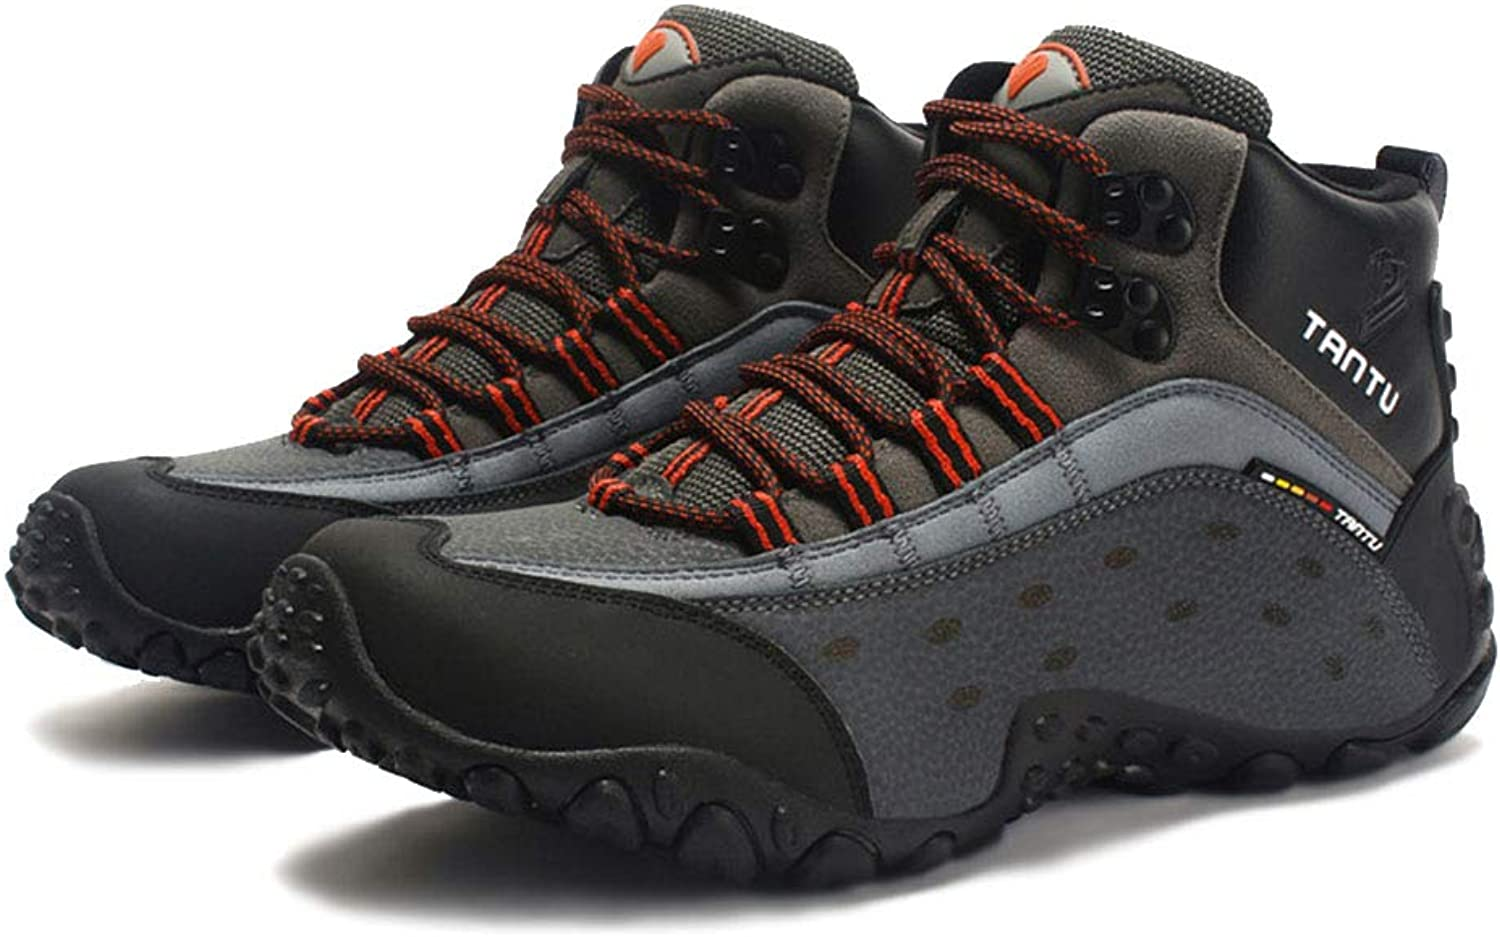 Giles Jones Men's Hiking shoes Snow Boots Outdoor Rubber WearResistant Climbing shoes